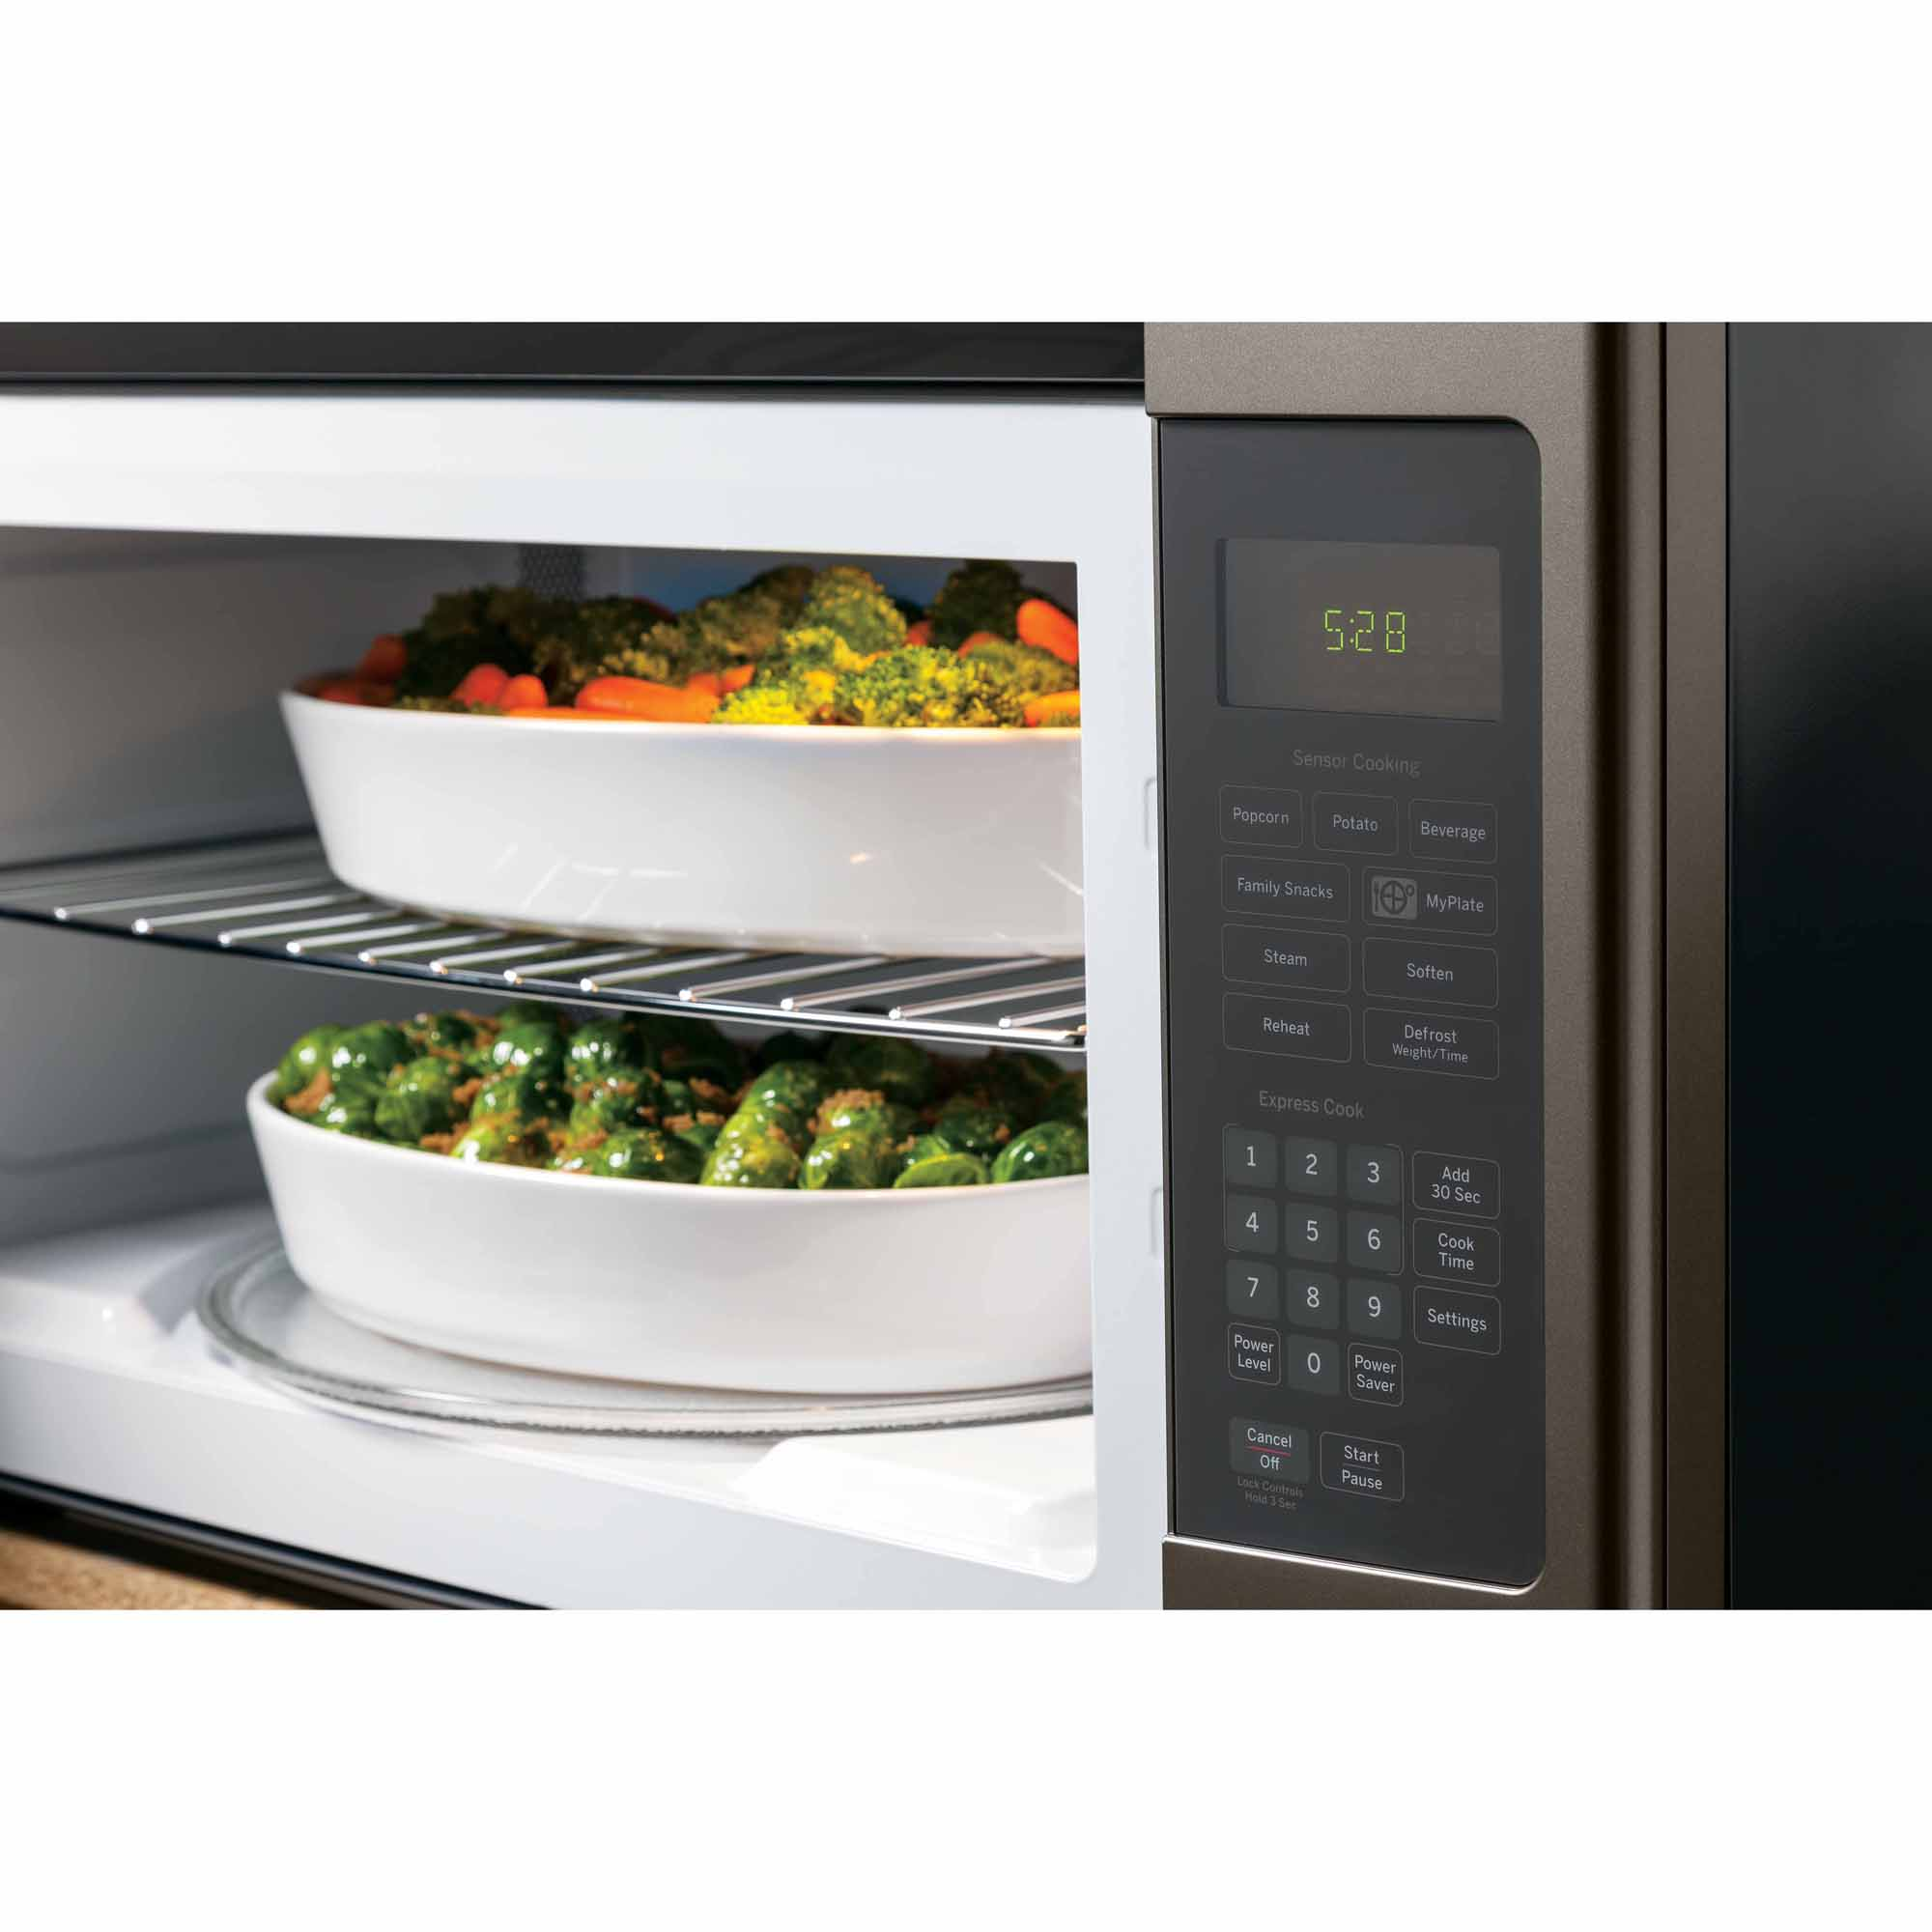 GE 1.9 cu. ft. Over-the-Range Sensor Microwave Oven - Metallic